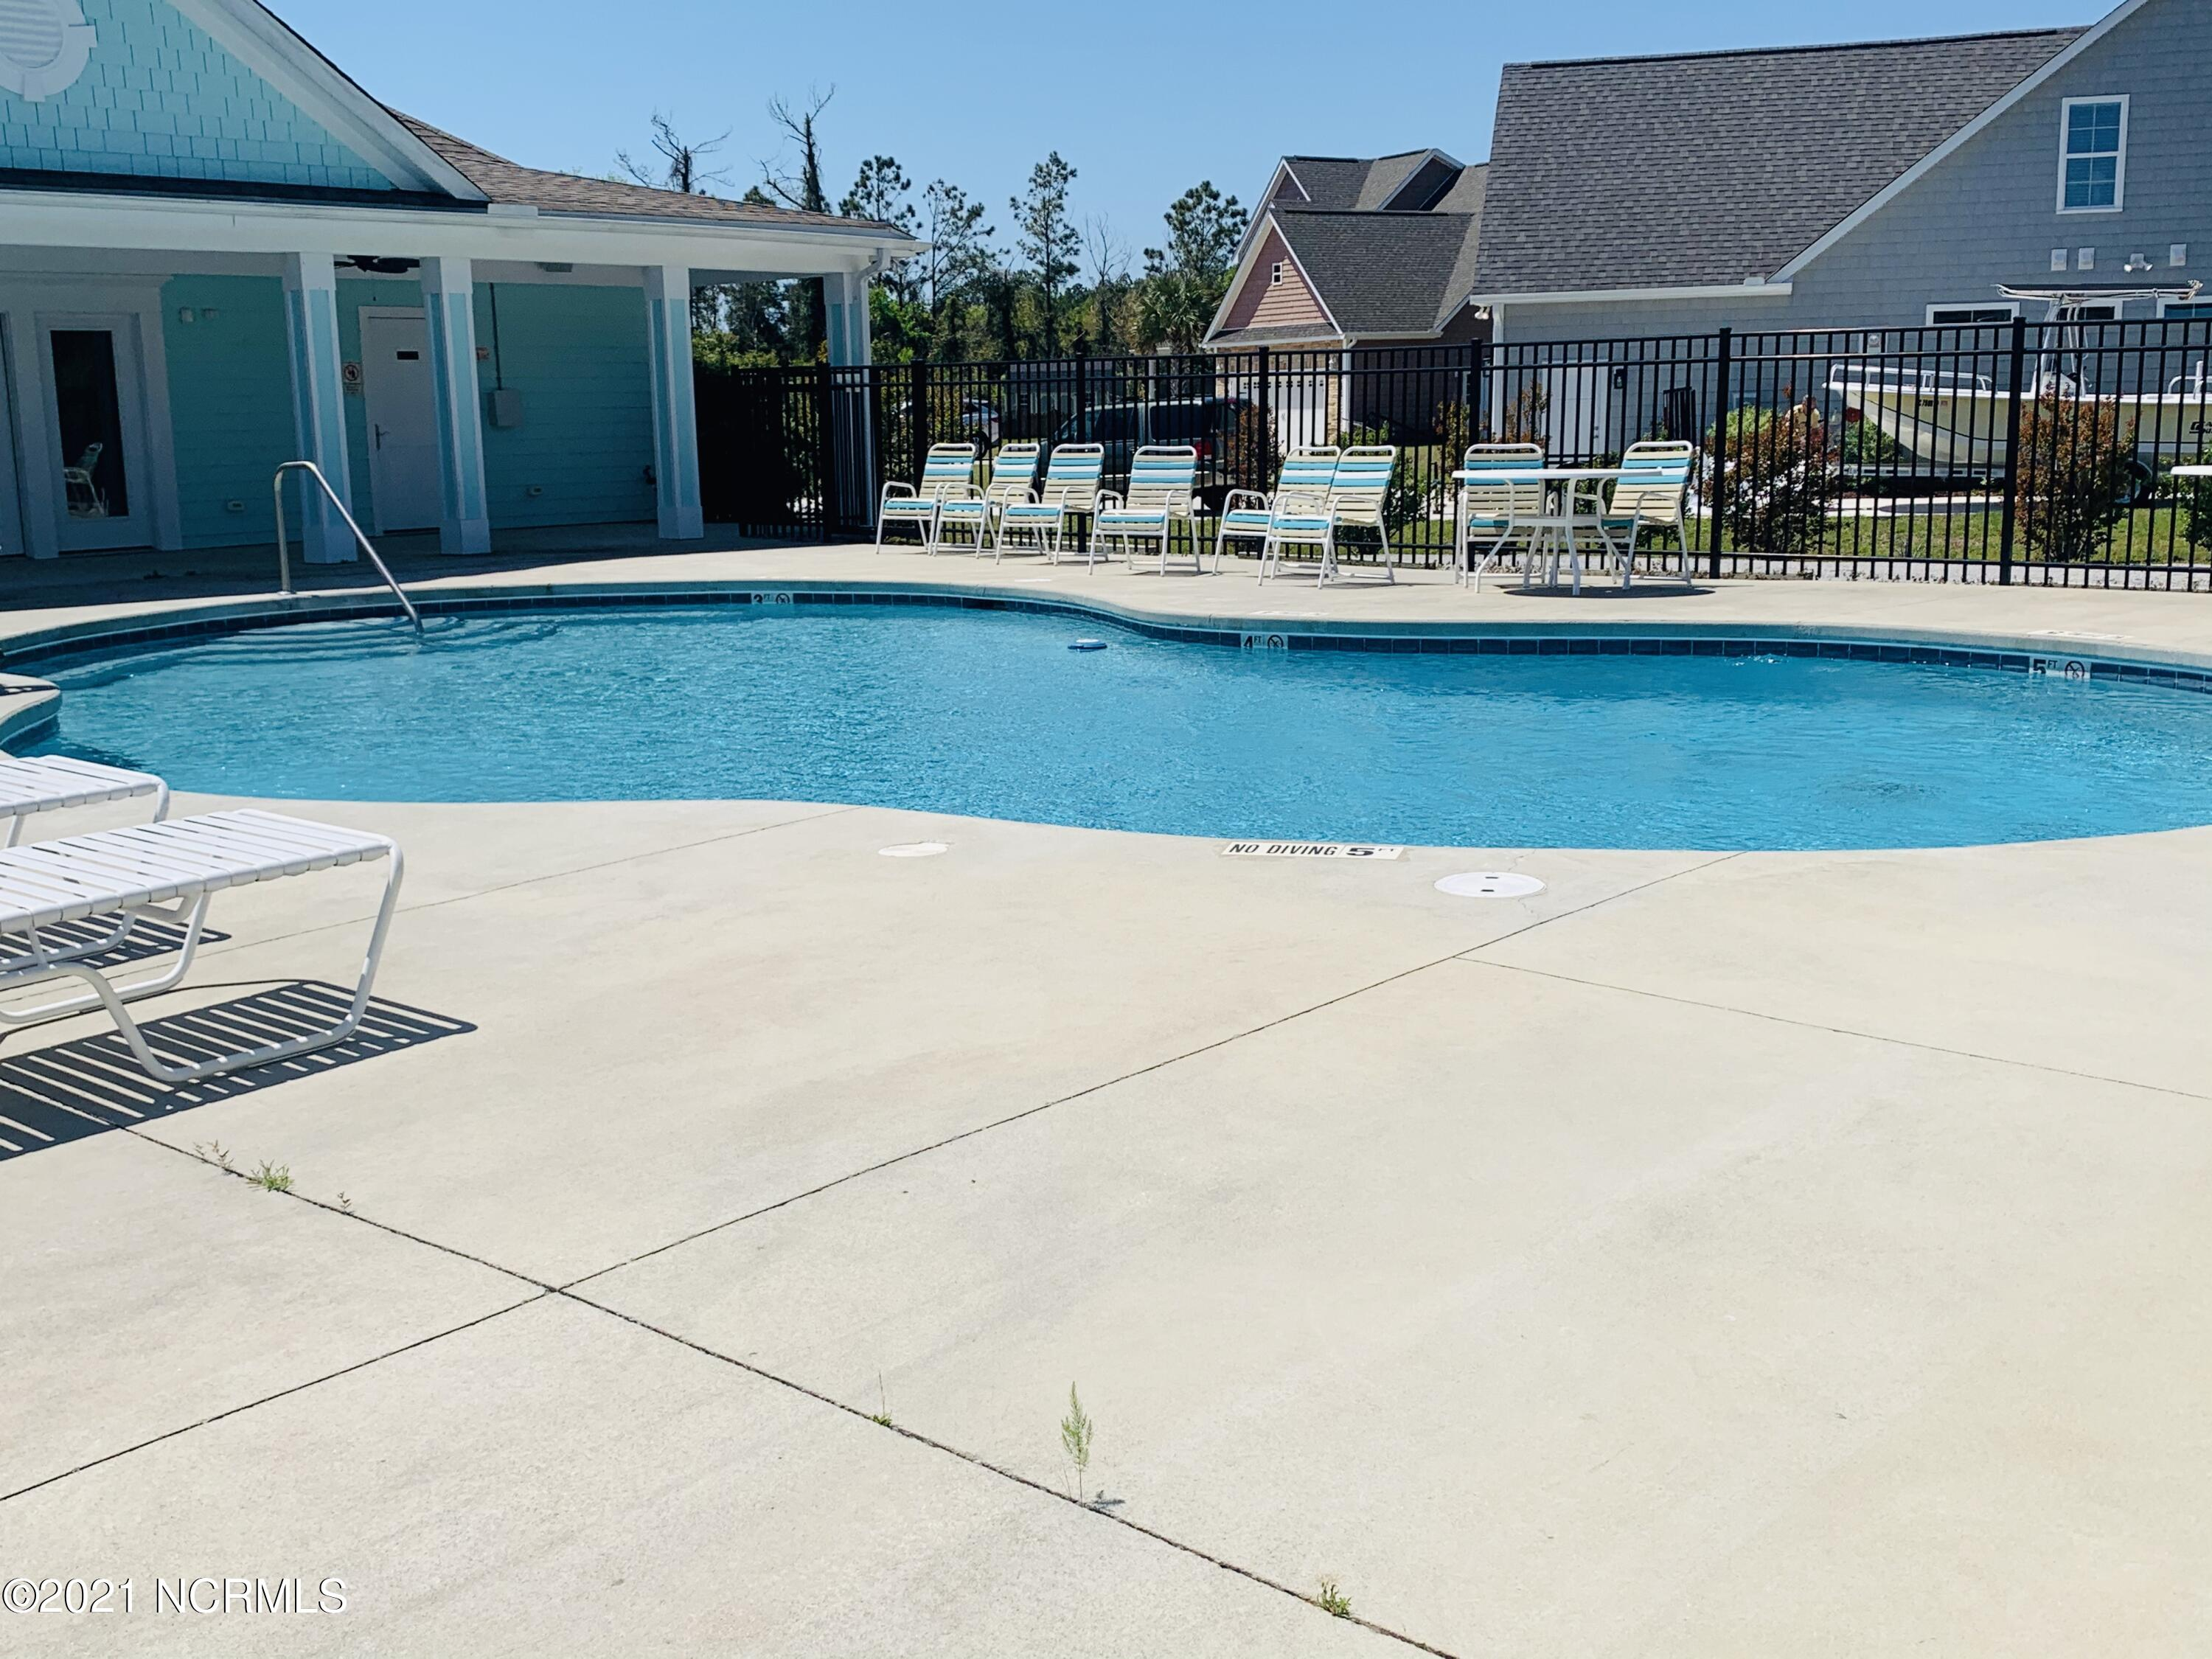 500 Buoy Court, Newport, North Carolina 28570, 4 Bedrooms Bedrooms, 8 Rooms Rooms,2 BathroomsBathrooms,Single family residence,For sale,Buoy,100285968